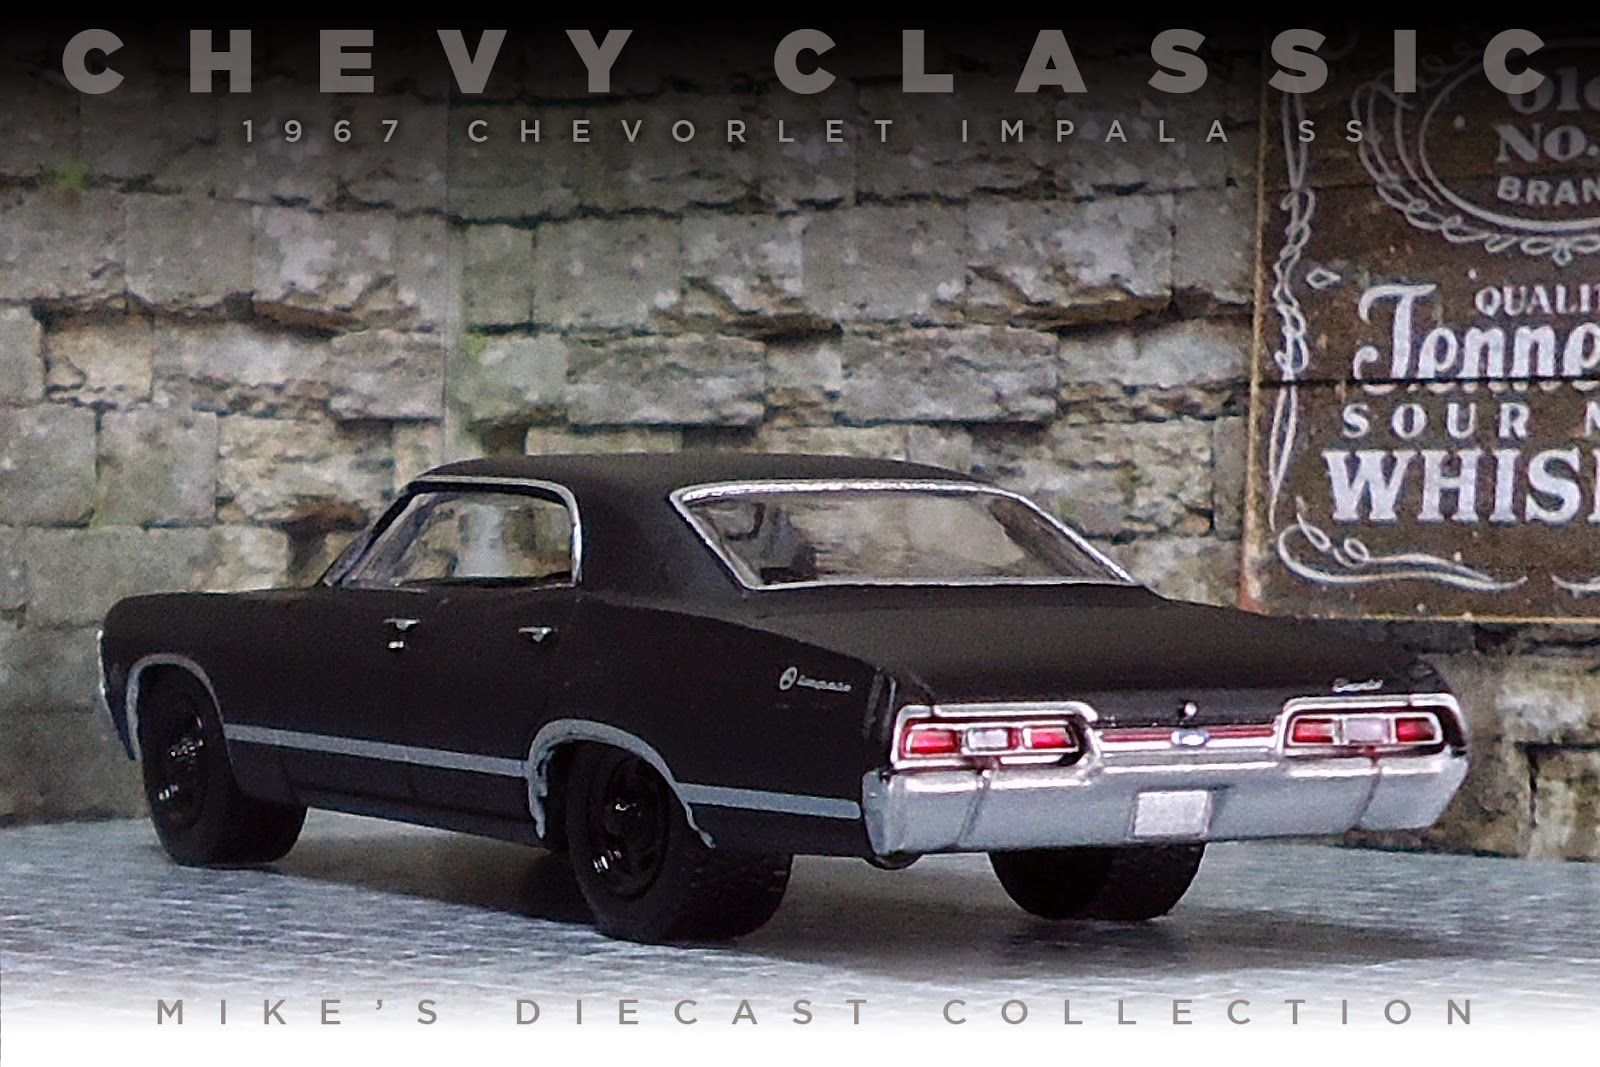 Mike's Diecast Collection: 1967 Chevrolet Impala SS 4door